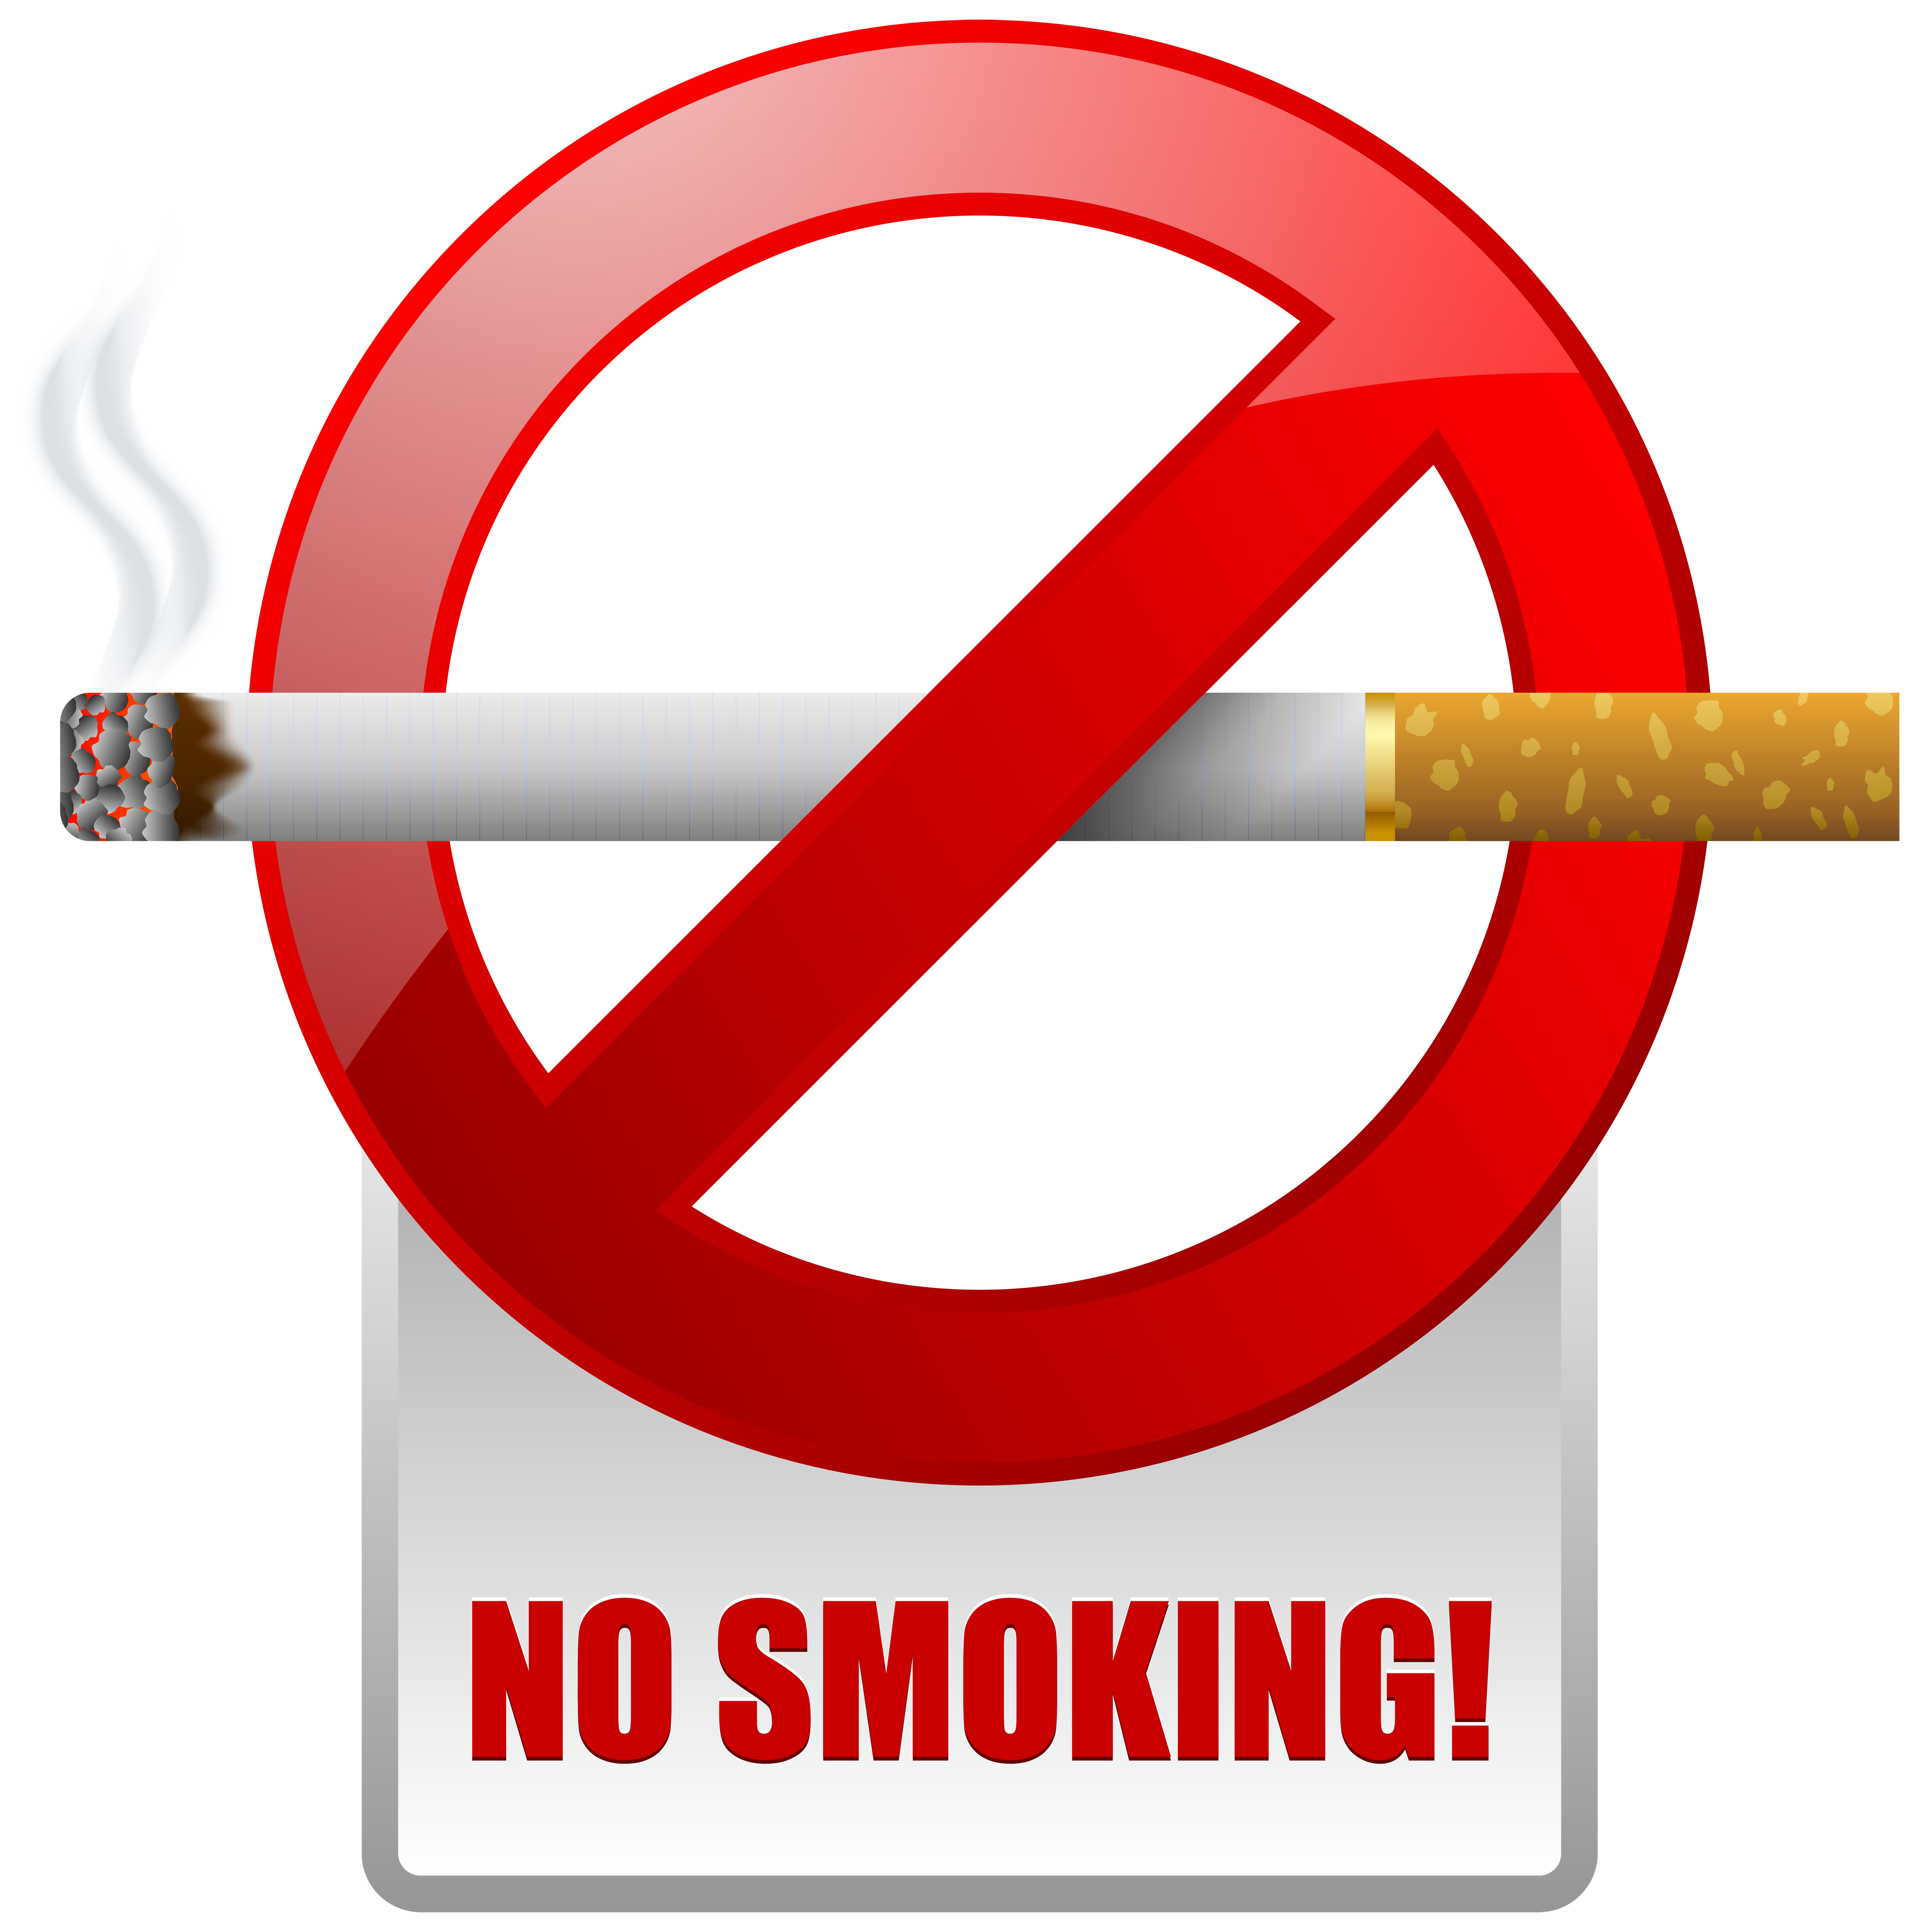 Red No Smoking Warning Sign PNG Clipart.